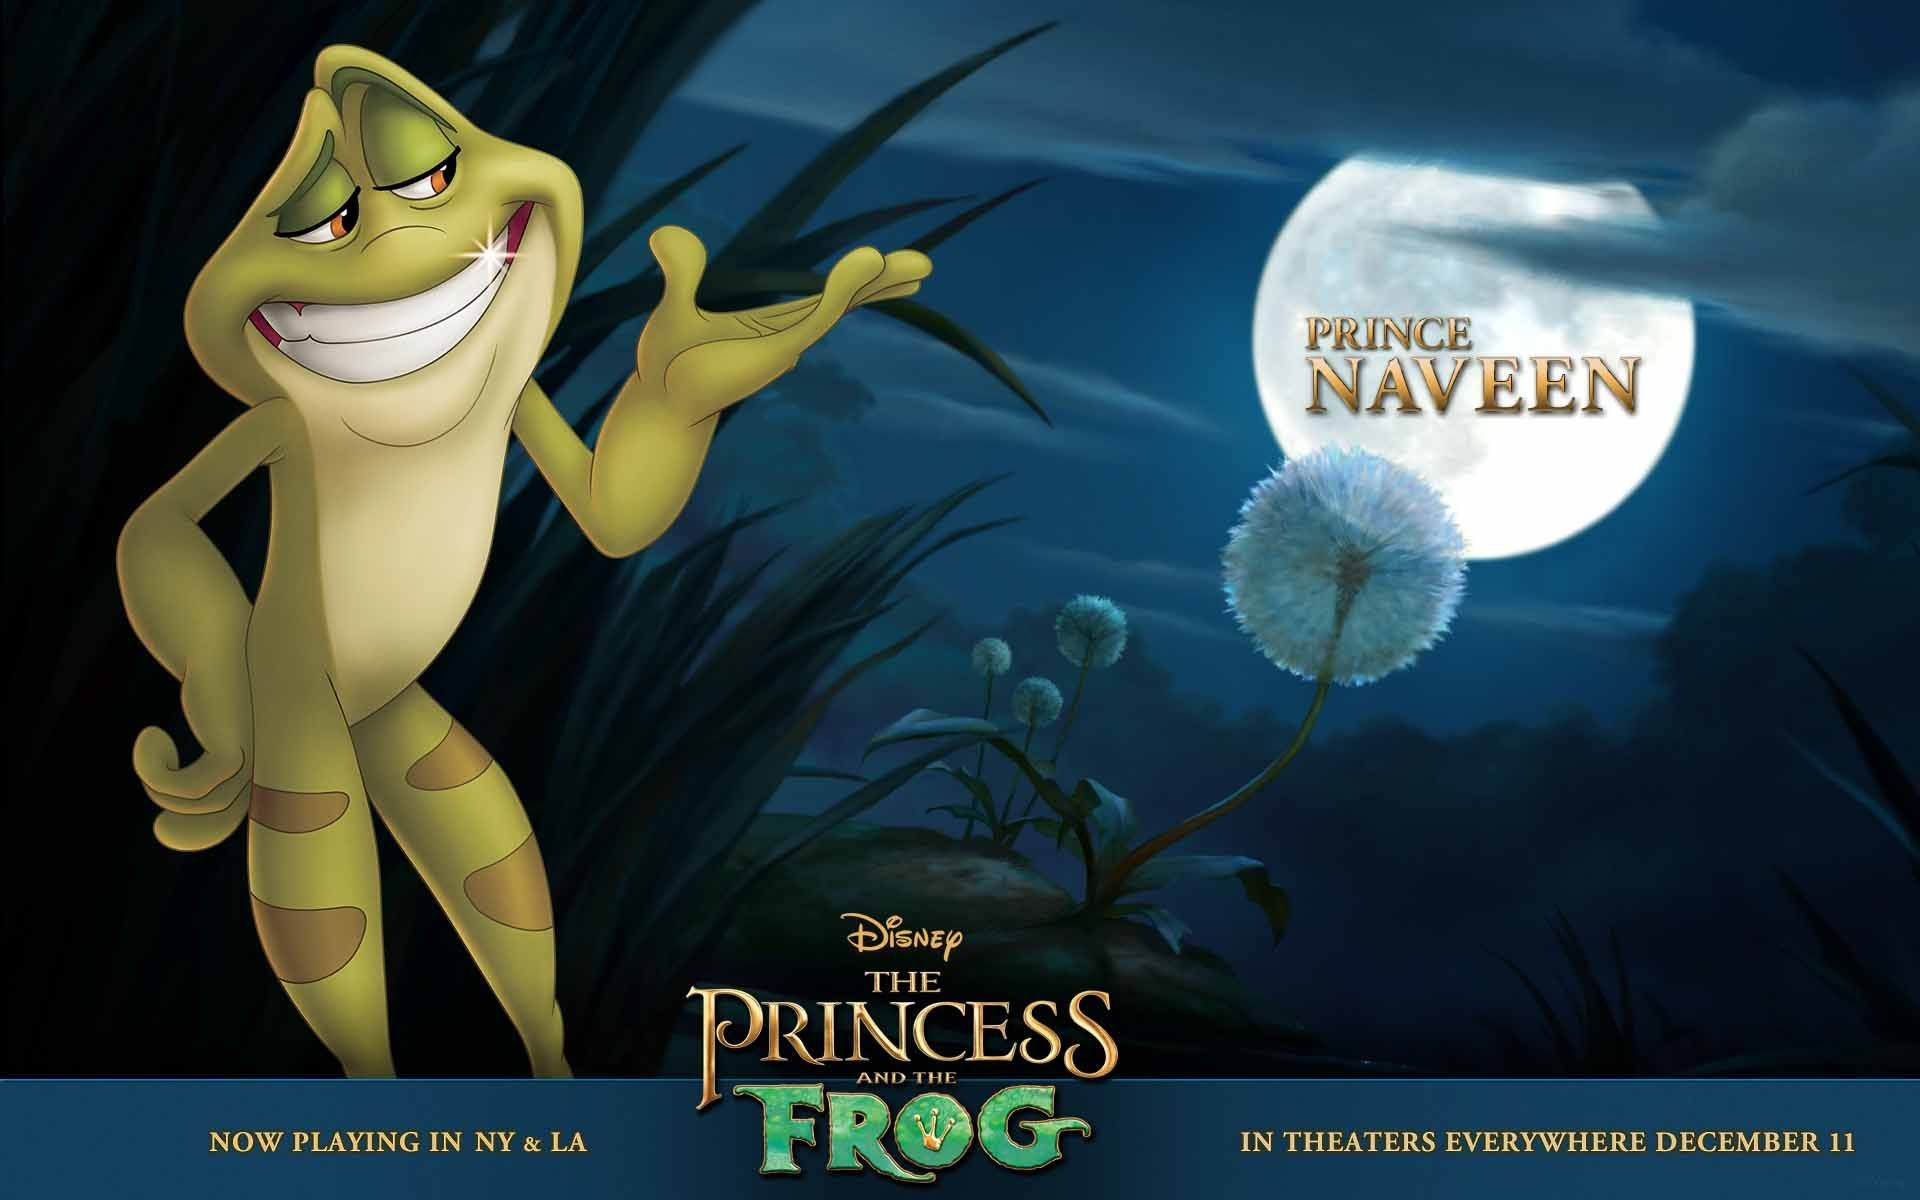 1920x1200 Princess and the Frog HD Wallpaper 28 - 1920 X 1200